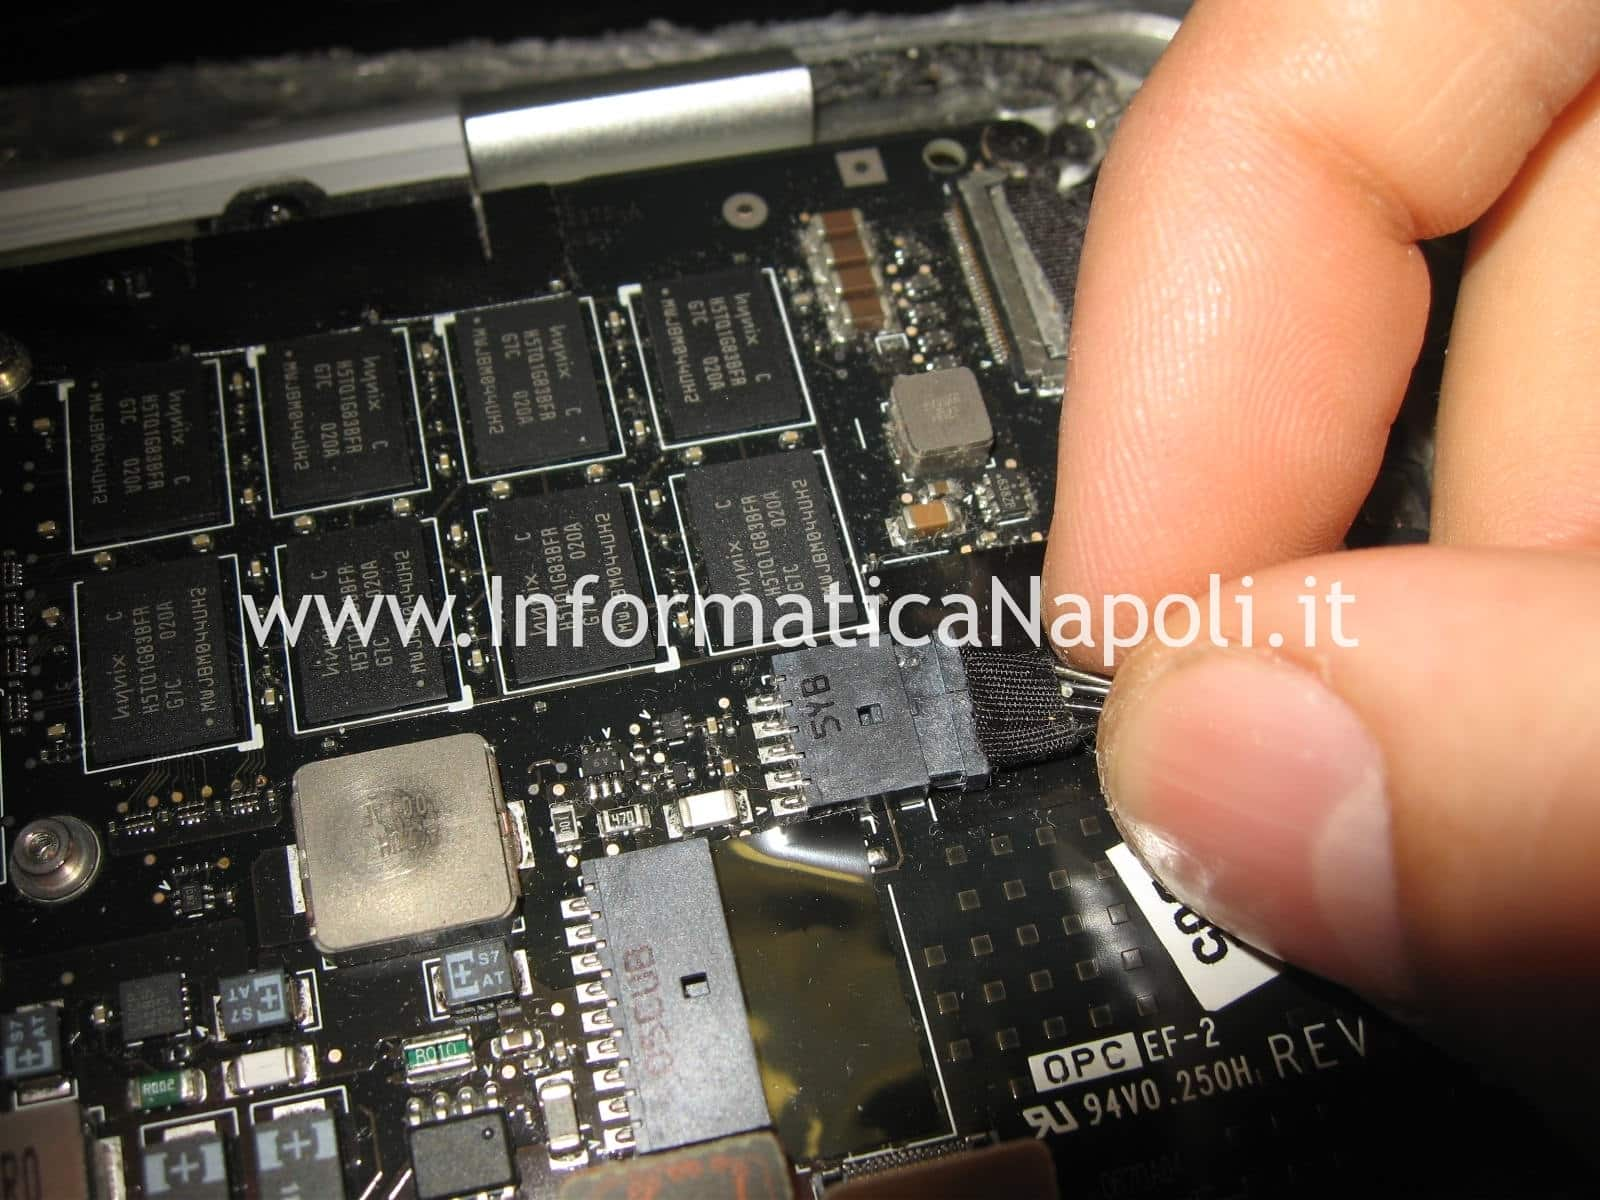 mac book air 13 A1237 GPU nVidia